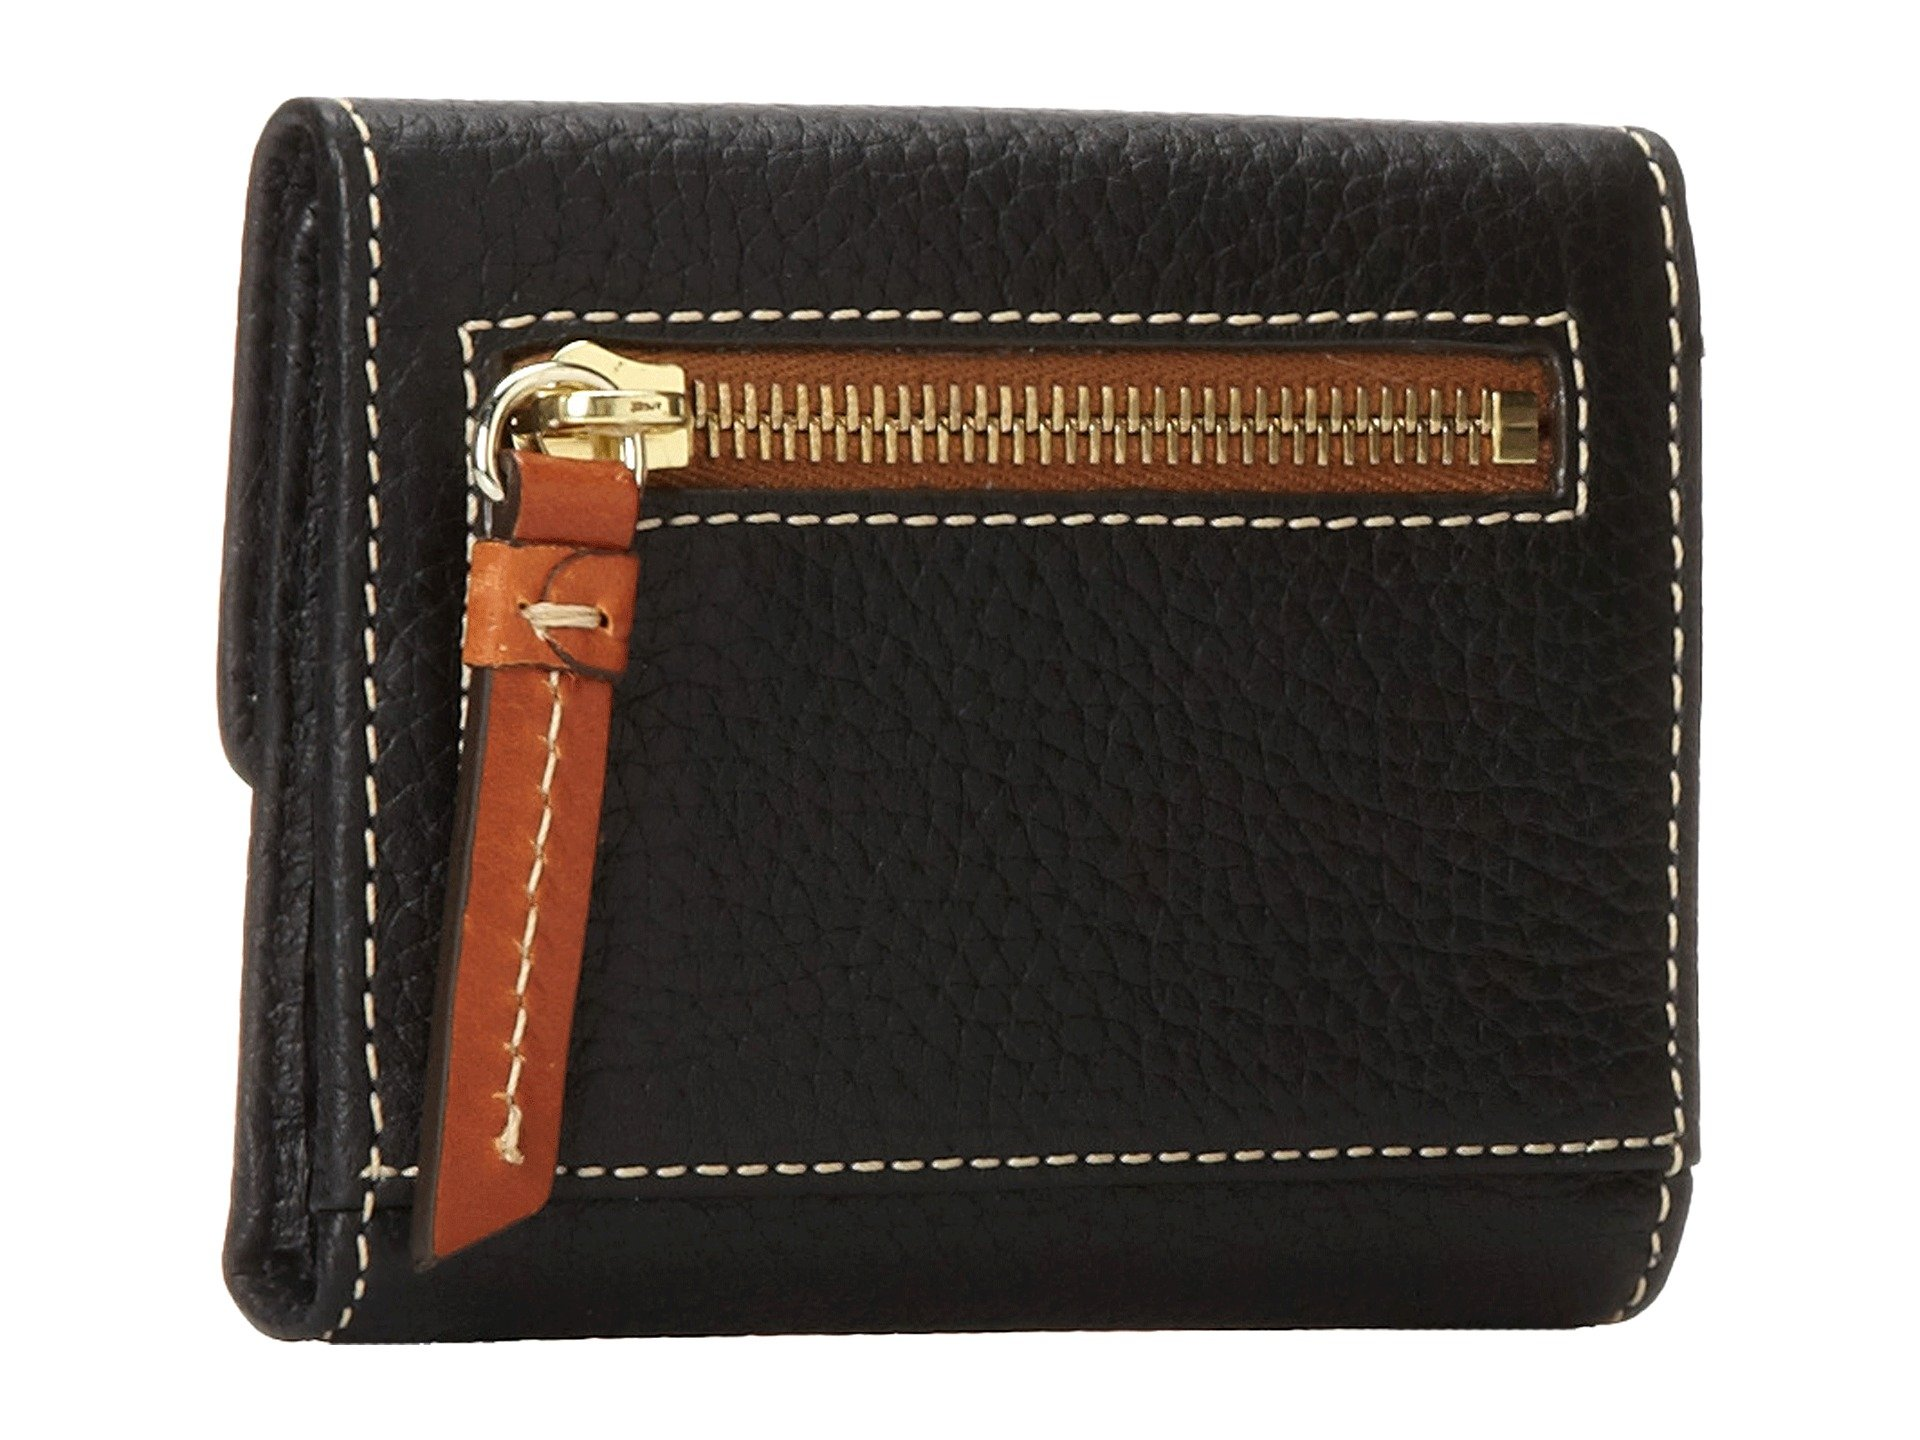 W Black Slgs Bourke Dooney Leather Trim Small New Pebble Card Credit amp; Wallet Flap Tan wTPxqR7